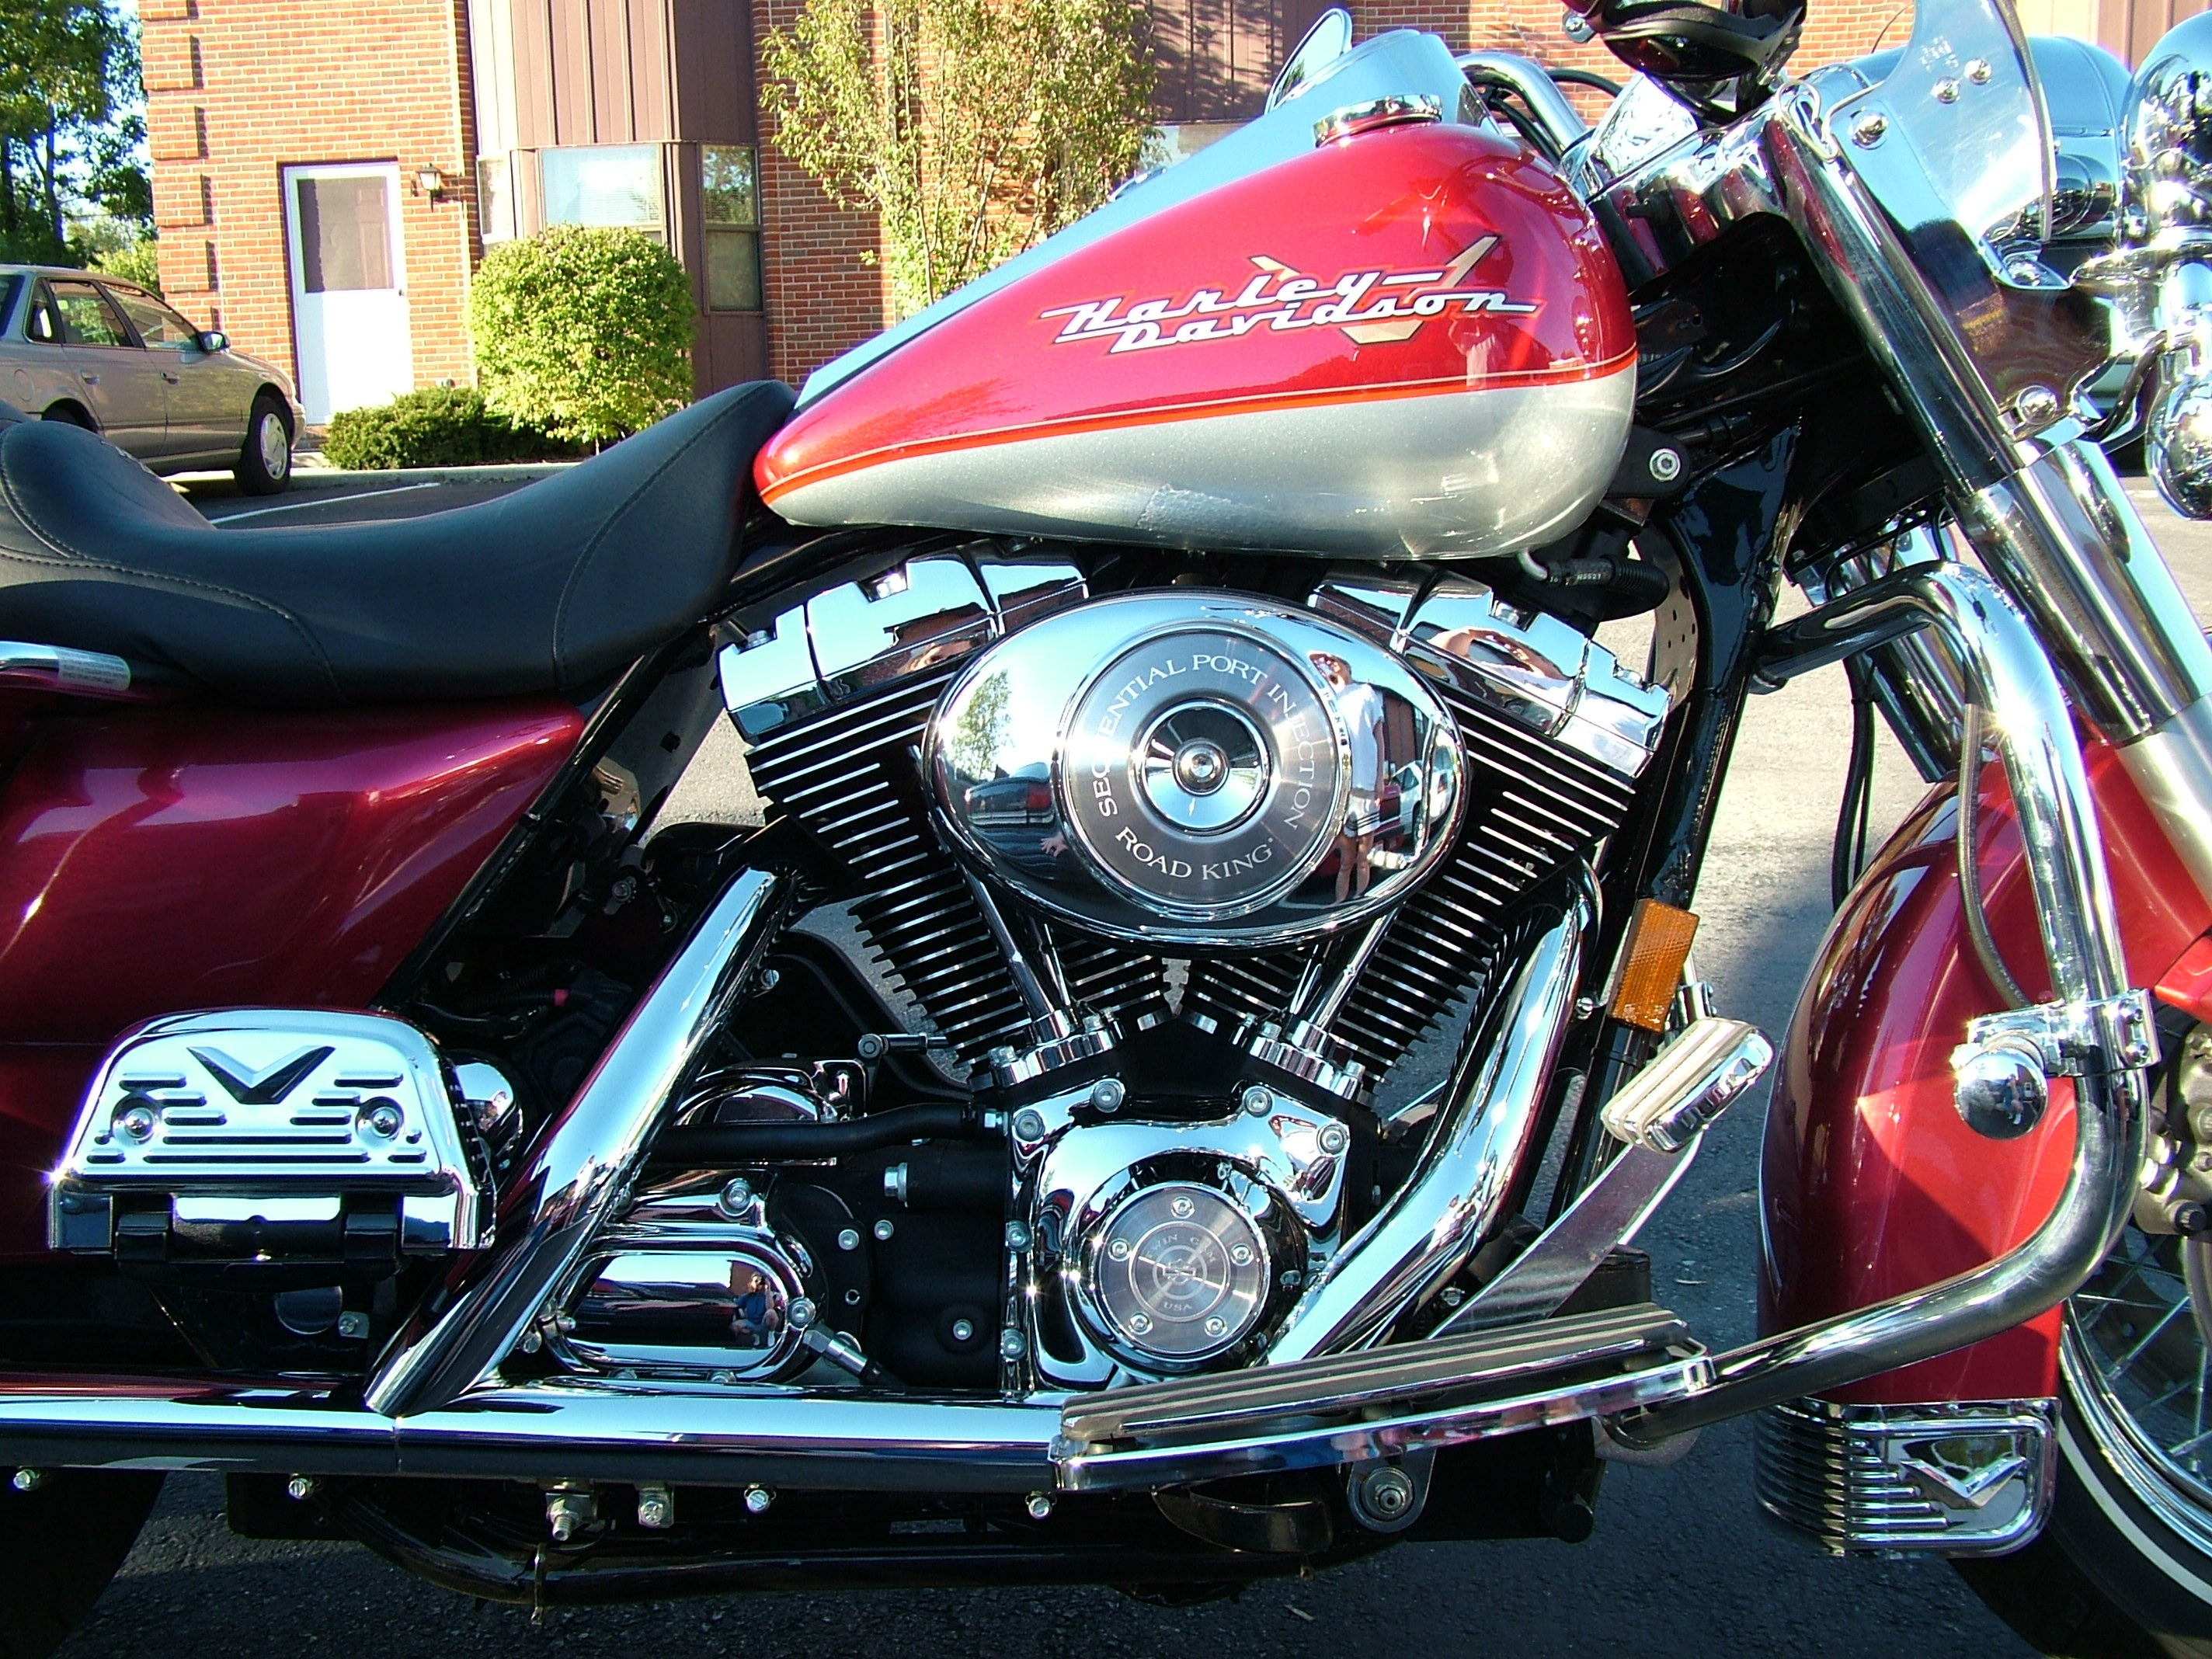 Harley Road King Engine by DocX-Stock